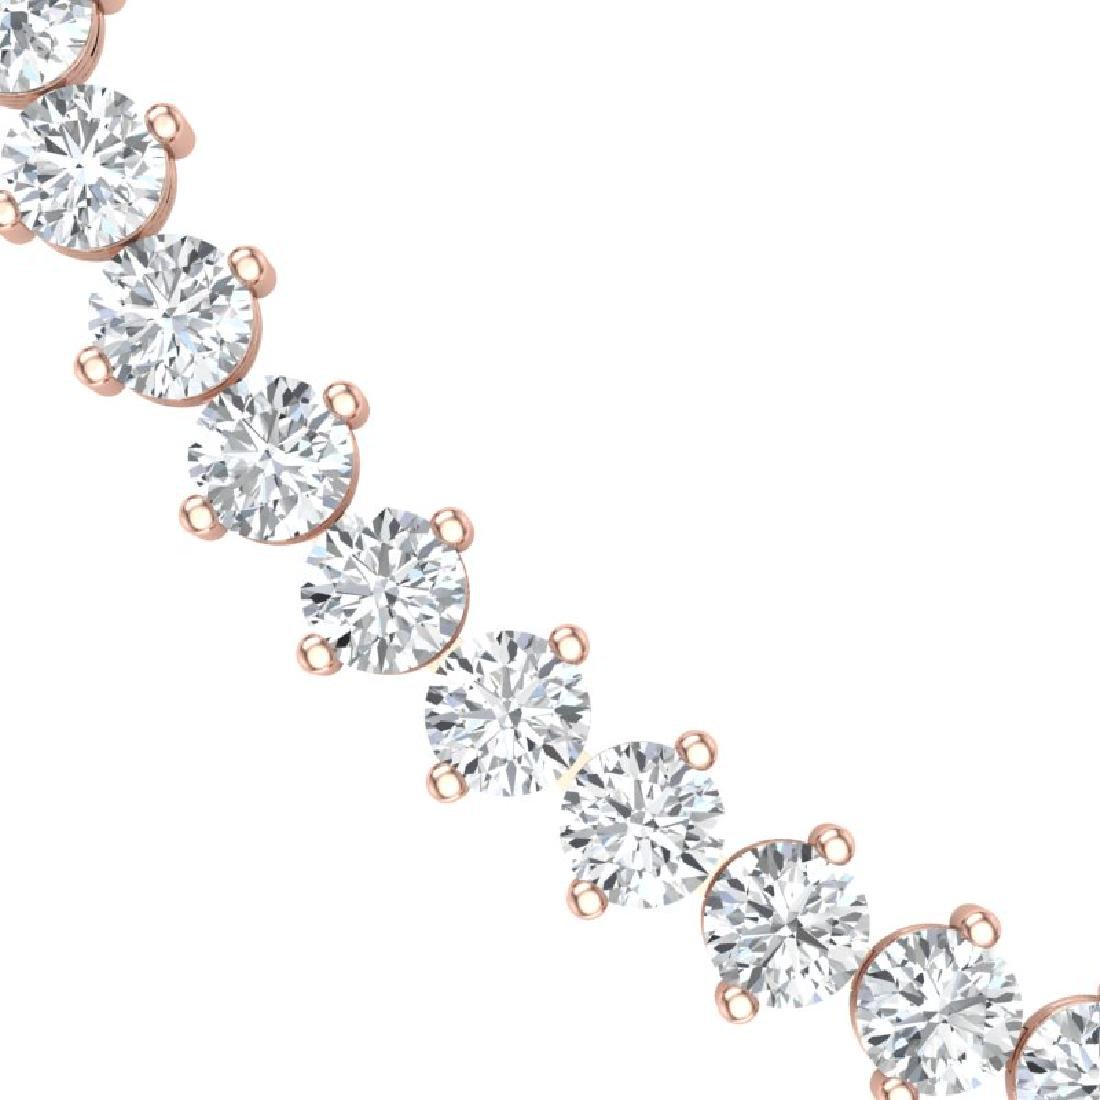 45 CTW Certified SI/I Diamond Necklace 18K Rose Gold - 2